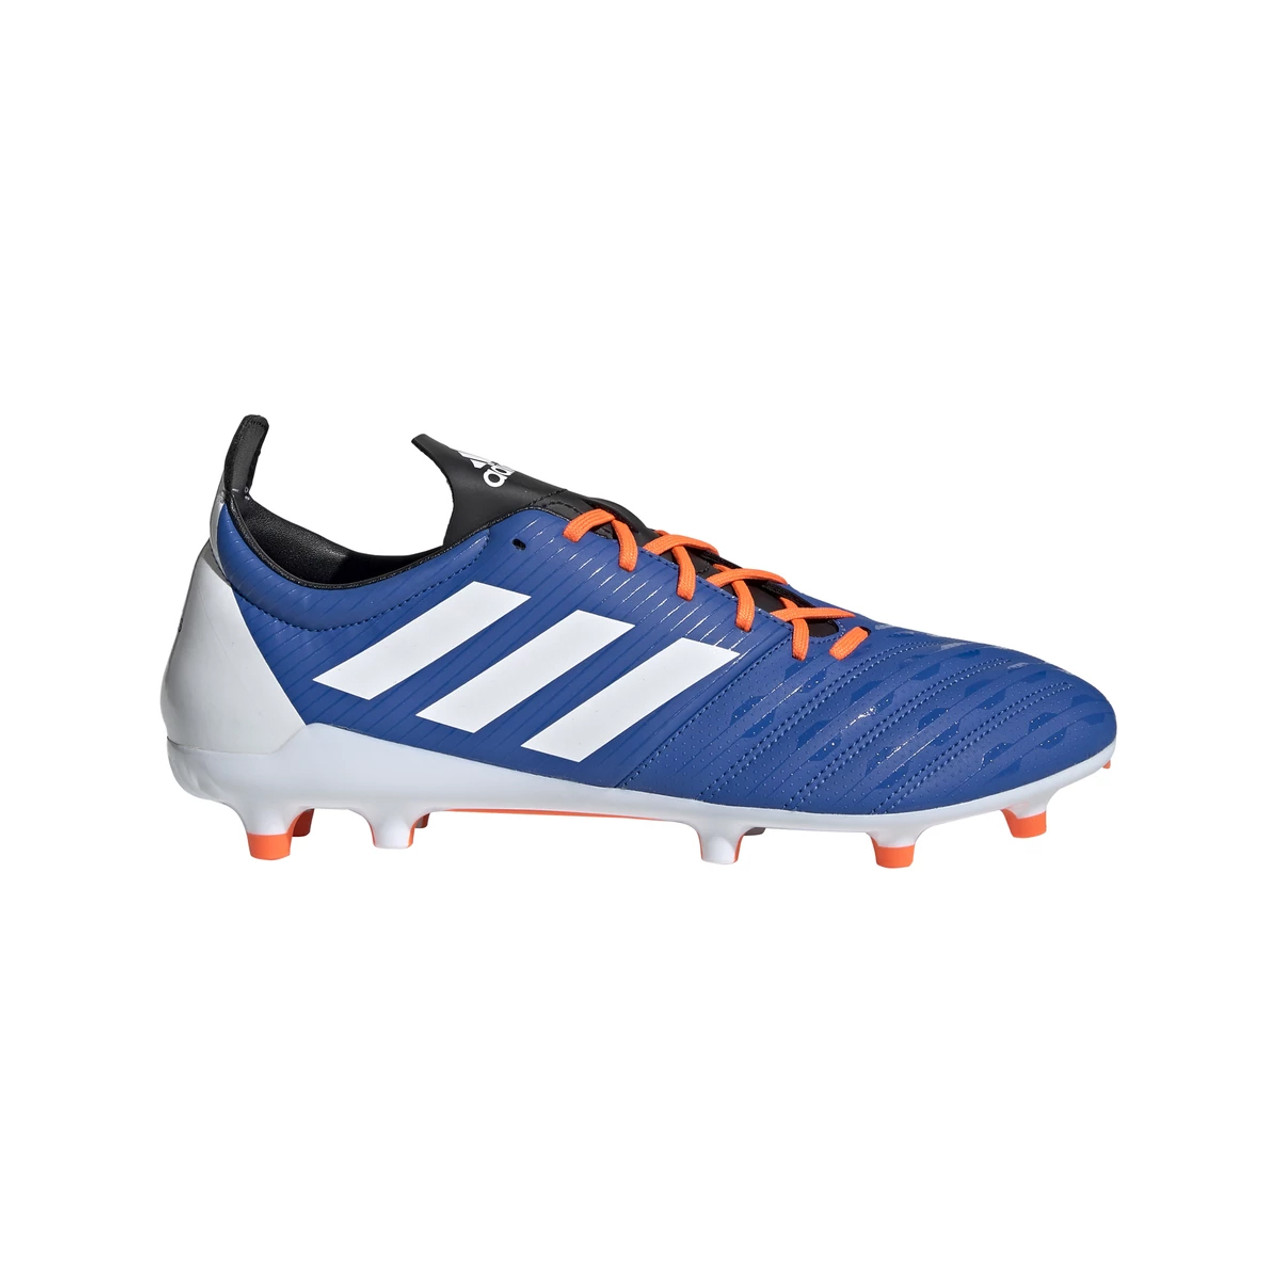 Adidas Malice Fg Rugby Boots Blue Orange On Sale At Rugby City 74 99